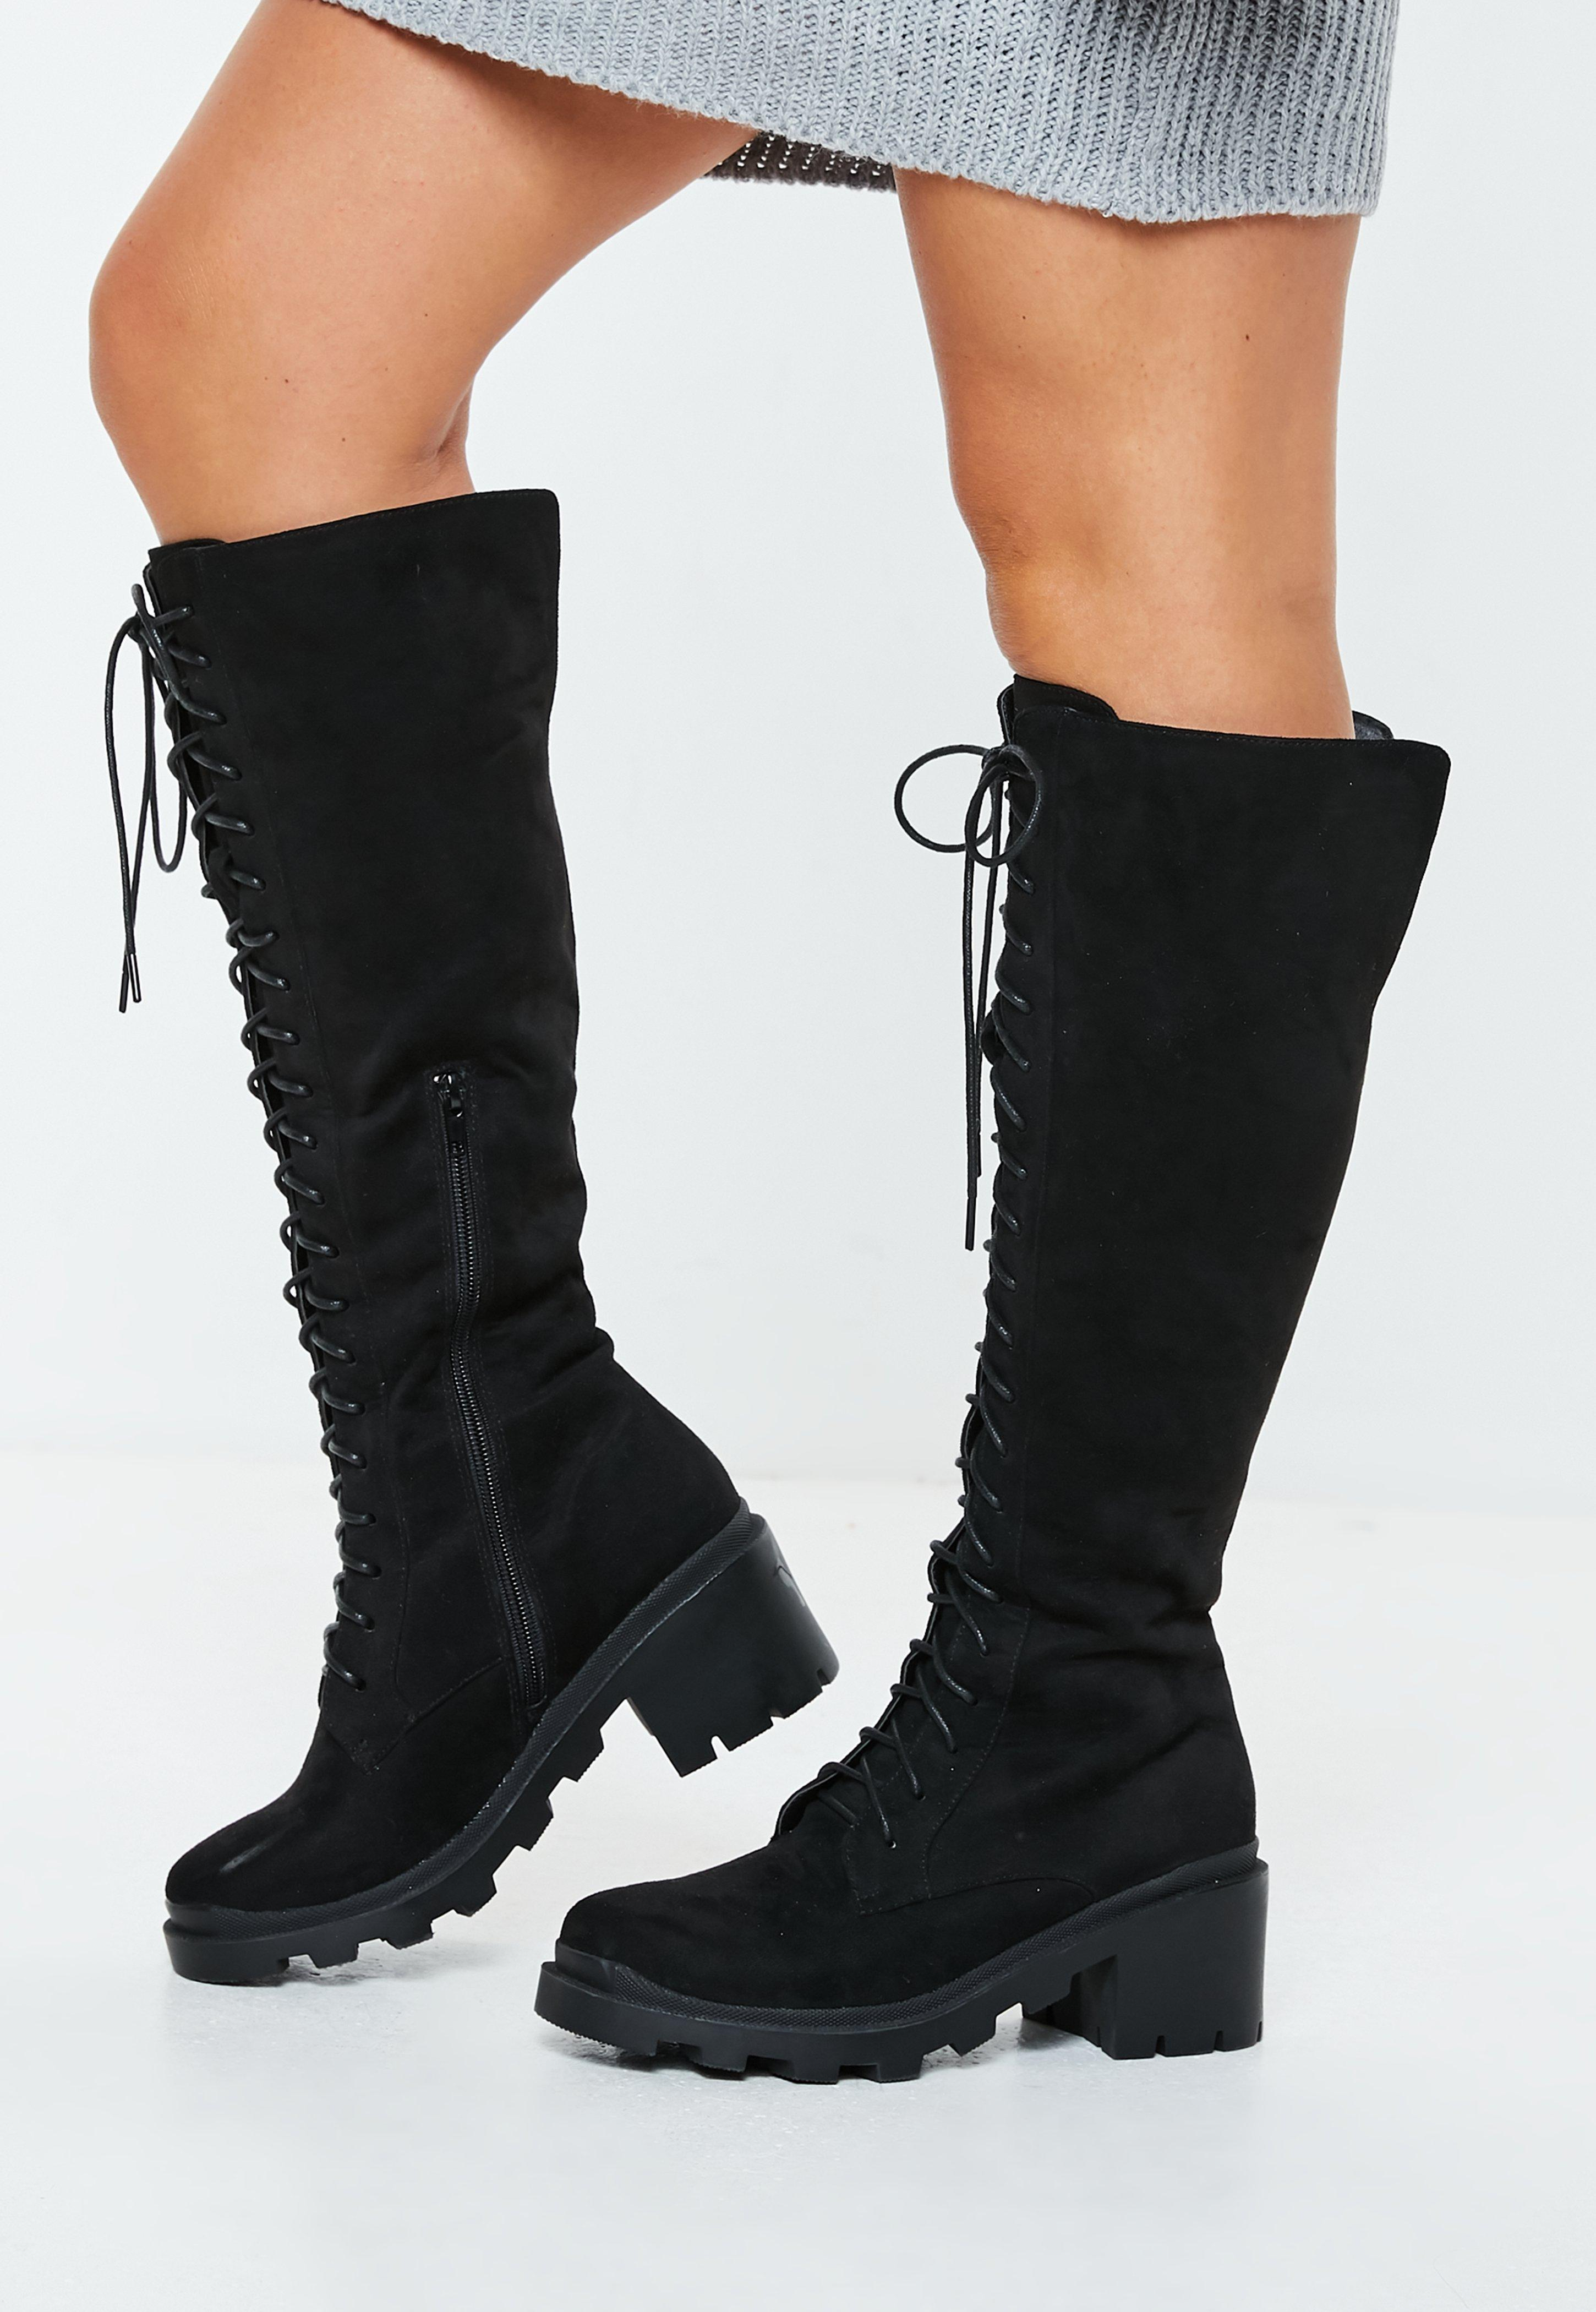 90c6f4ee429 Thigh High Boots